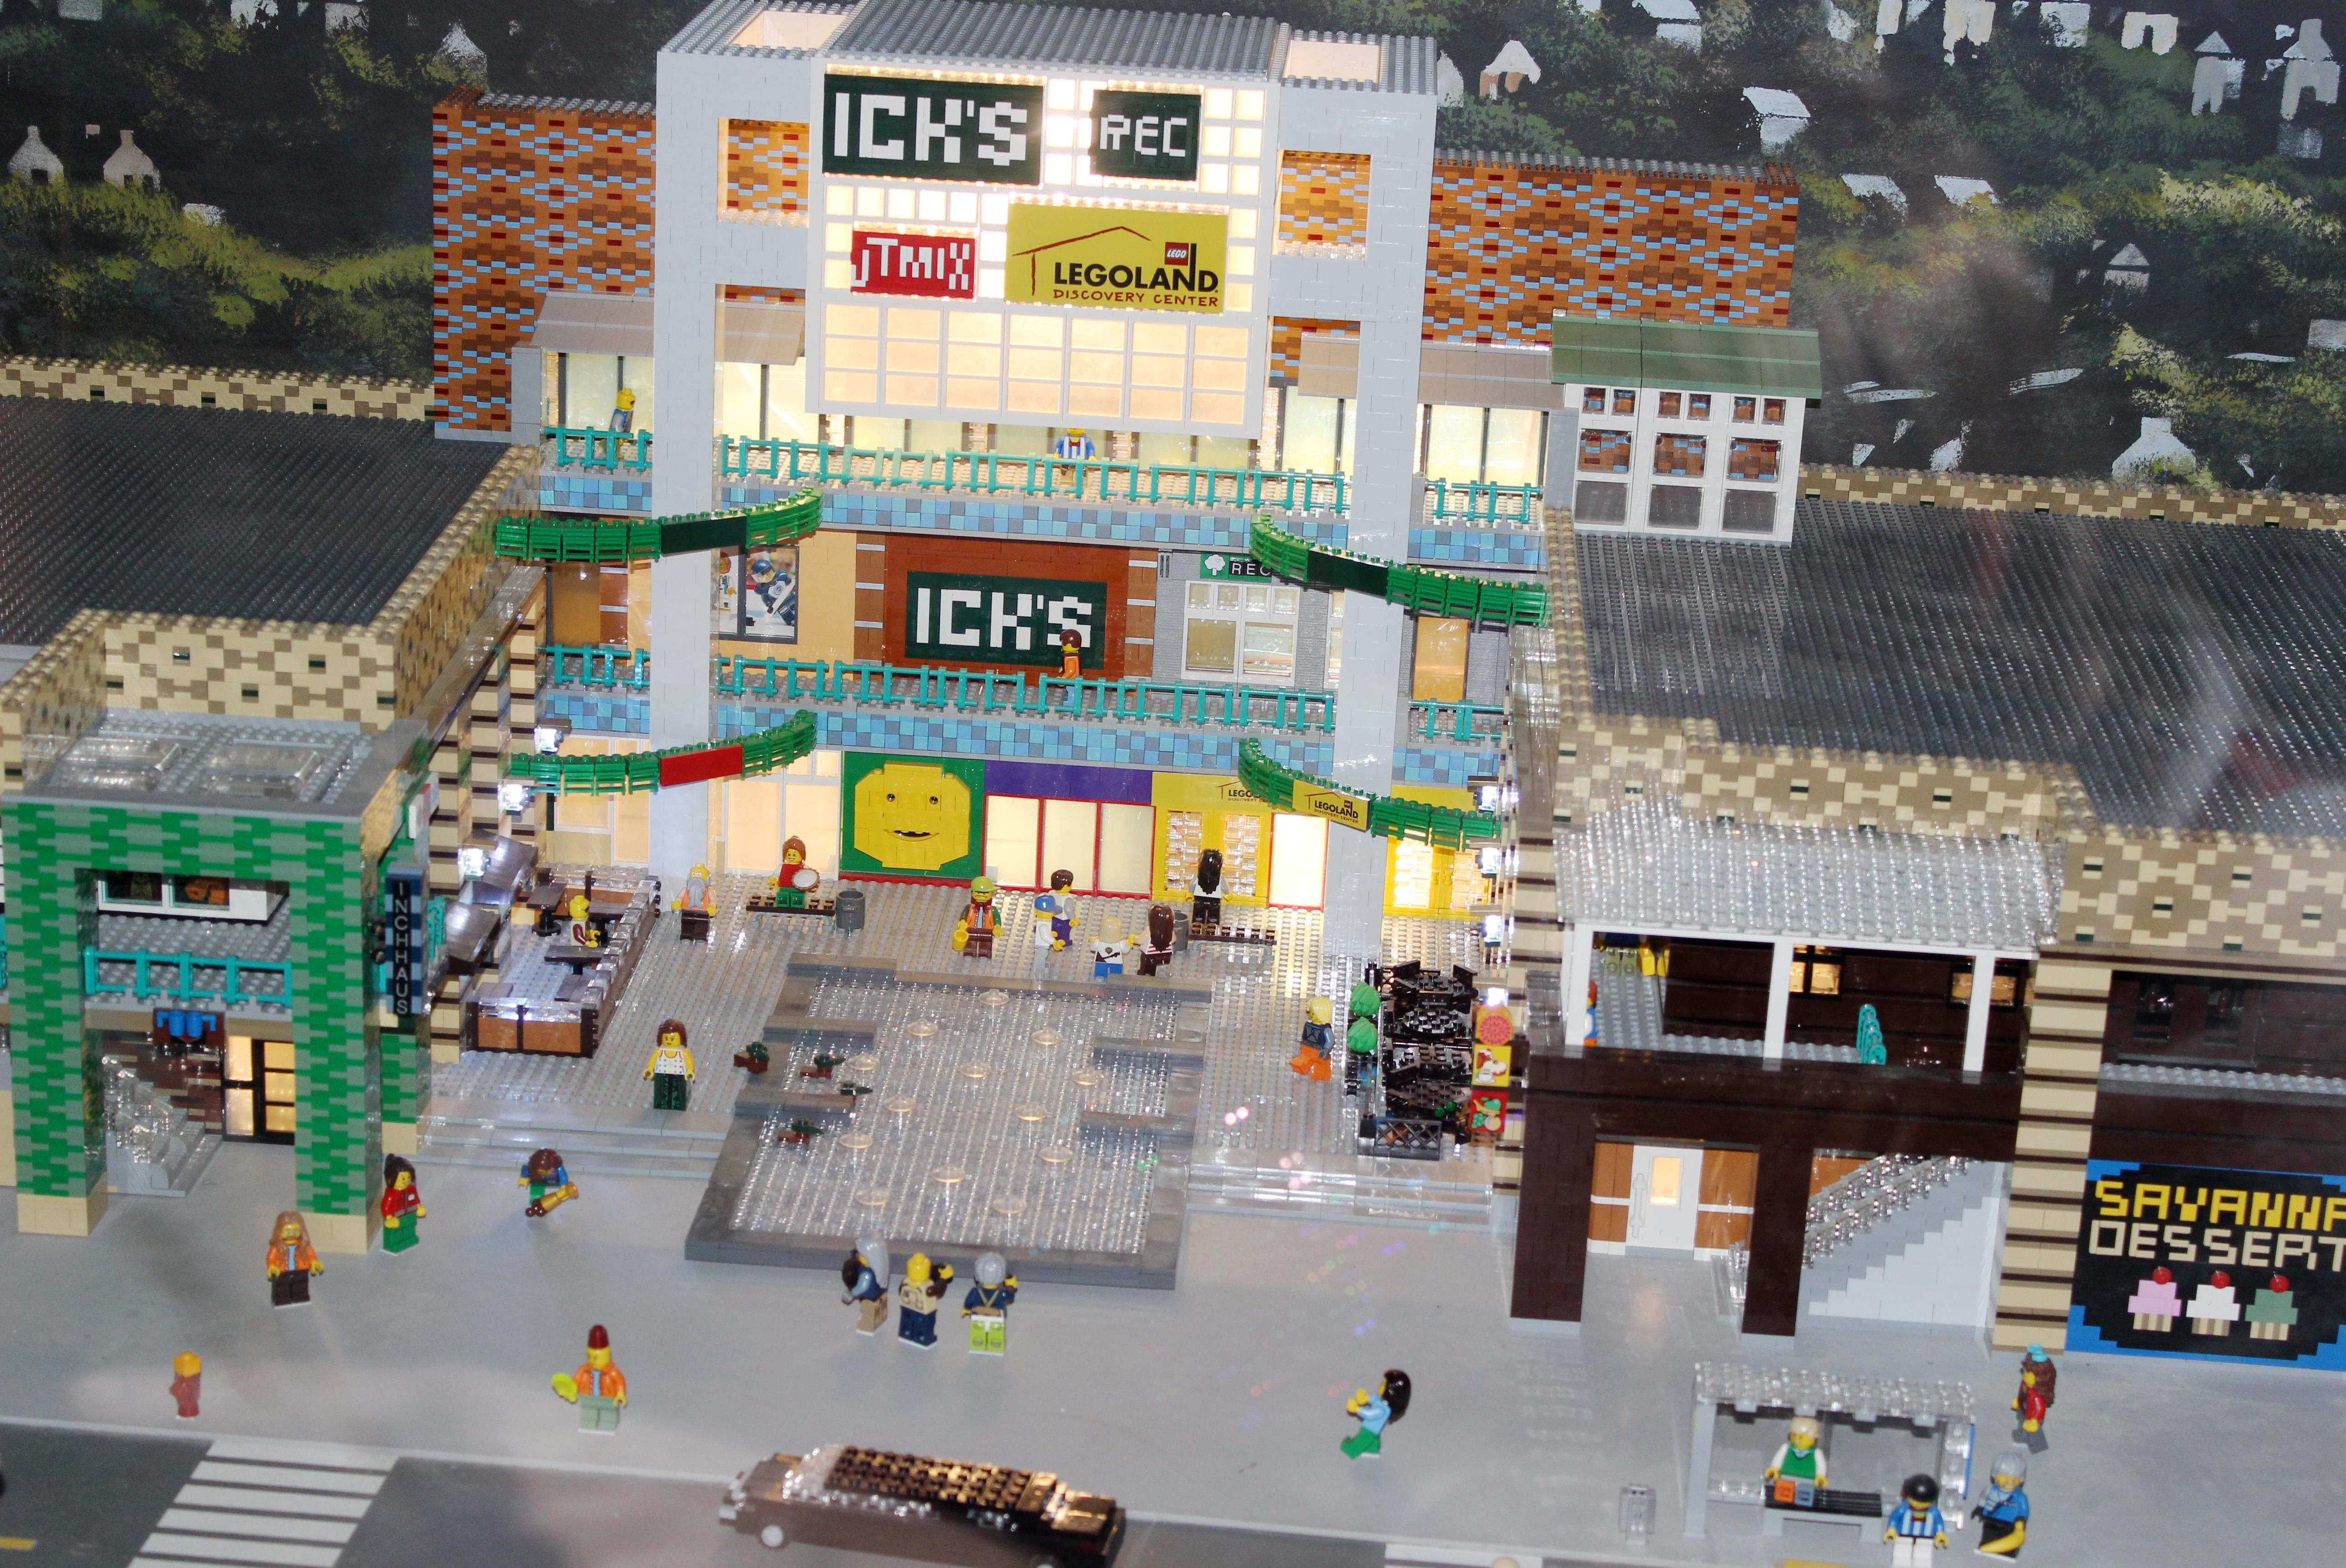 New York Welcomes Legoland Discovery Center March 27